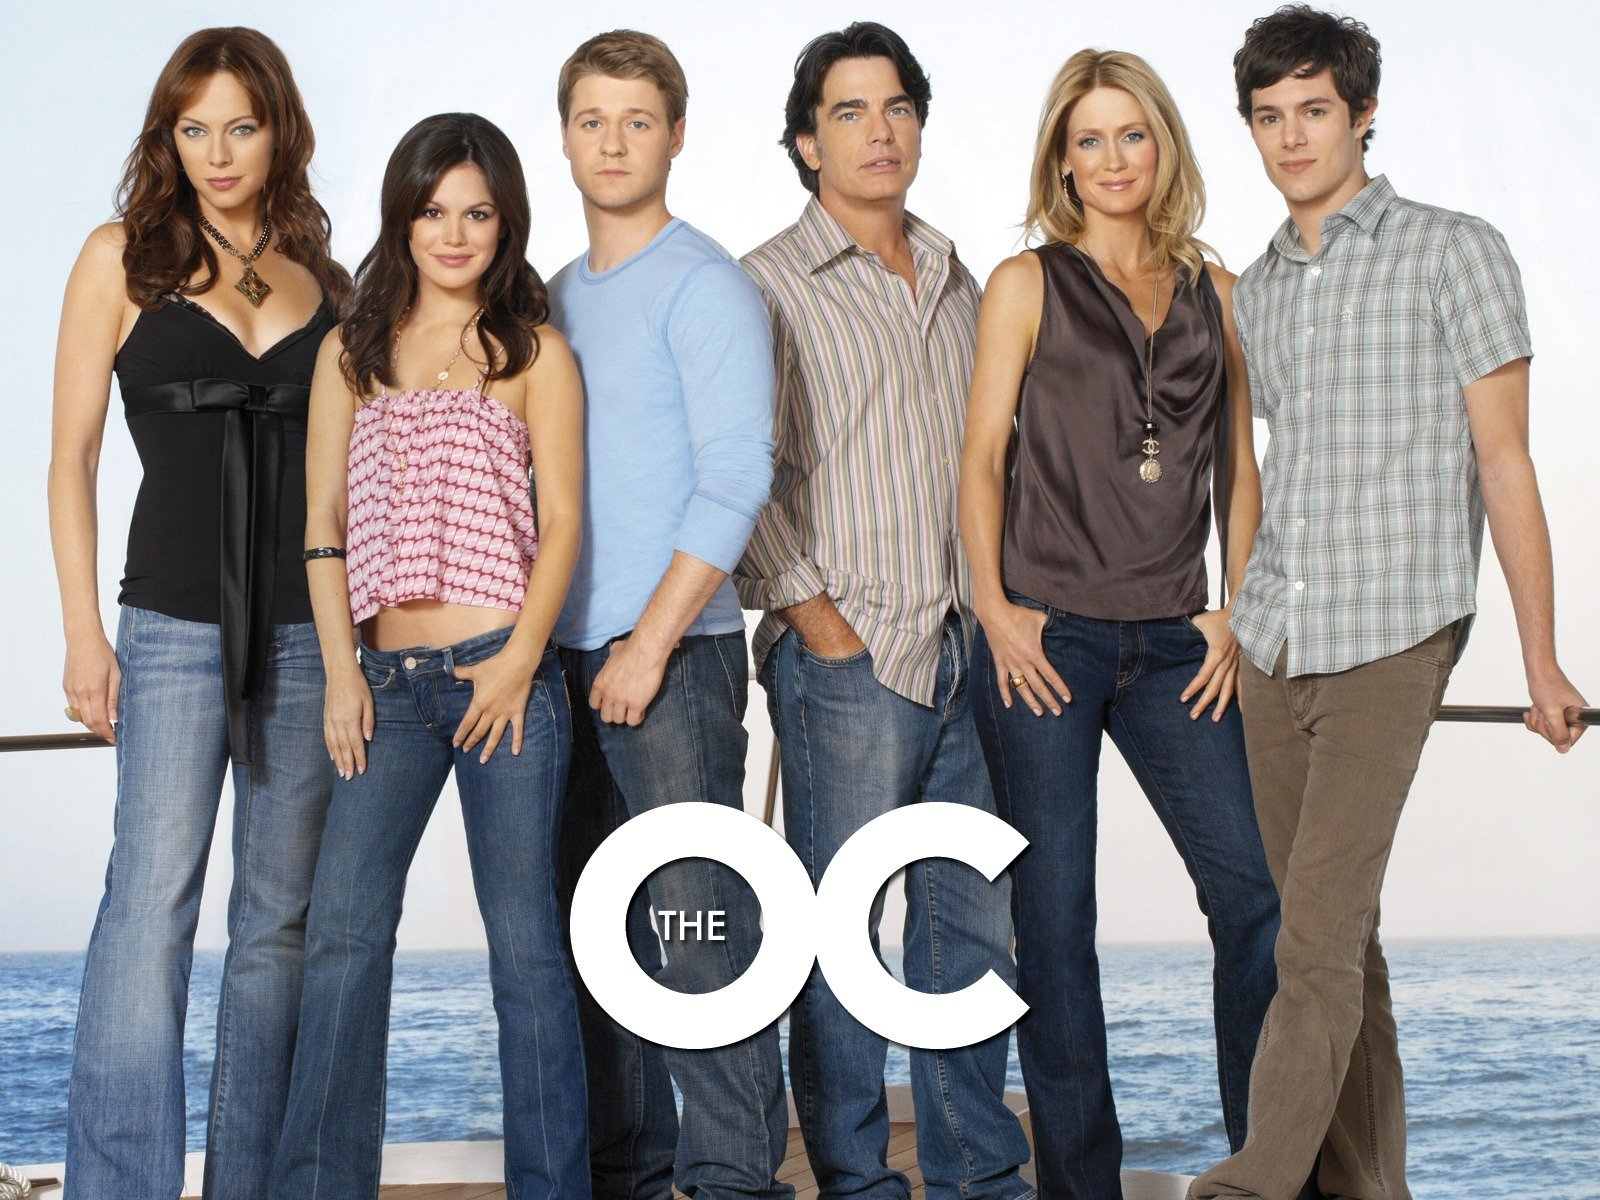 Watch The Oc The Complete Second Season Prime Video